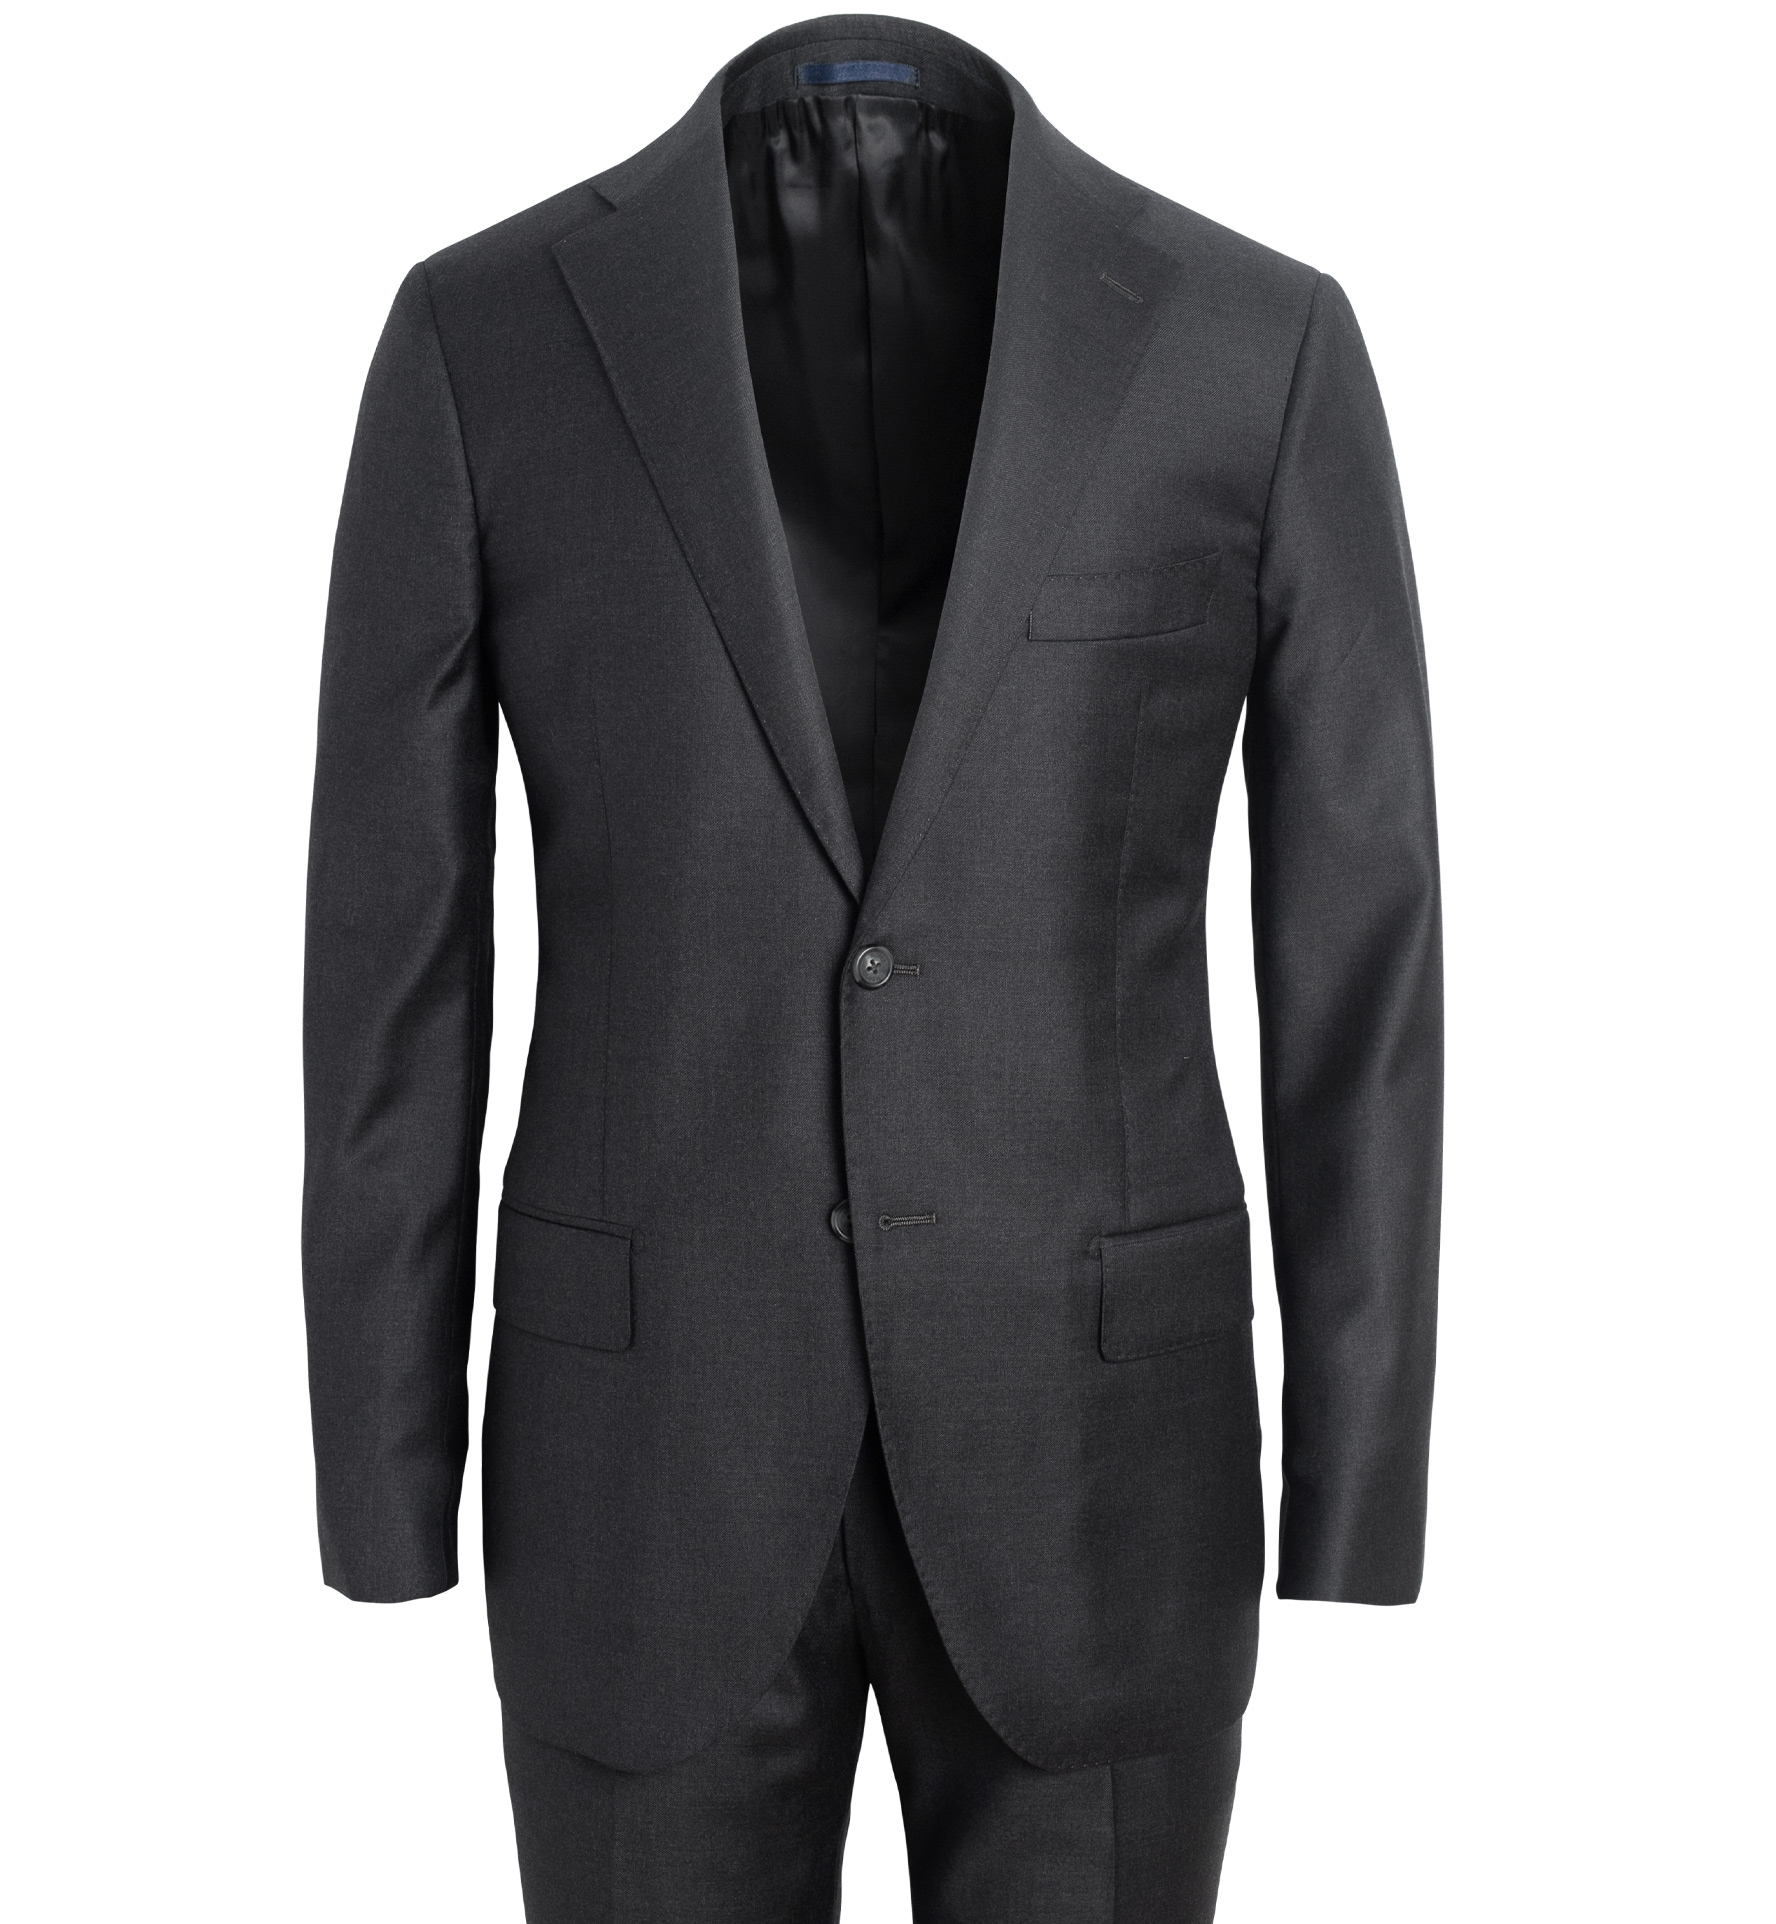 Zoom Image of Mercer Grey S130s Wool Suit